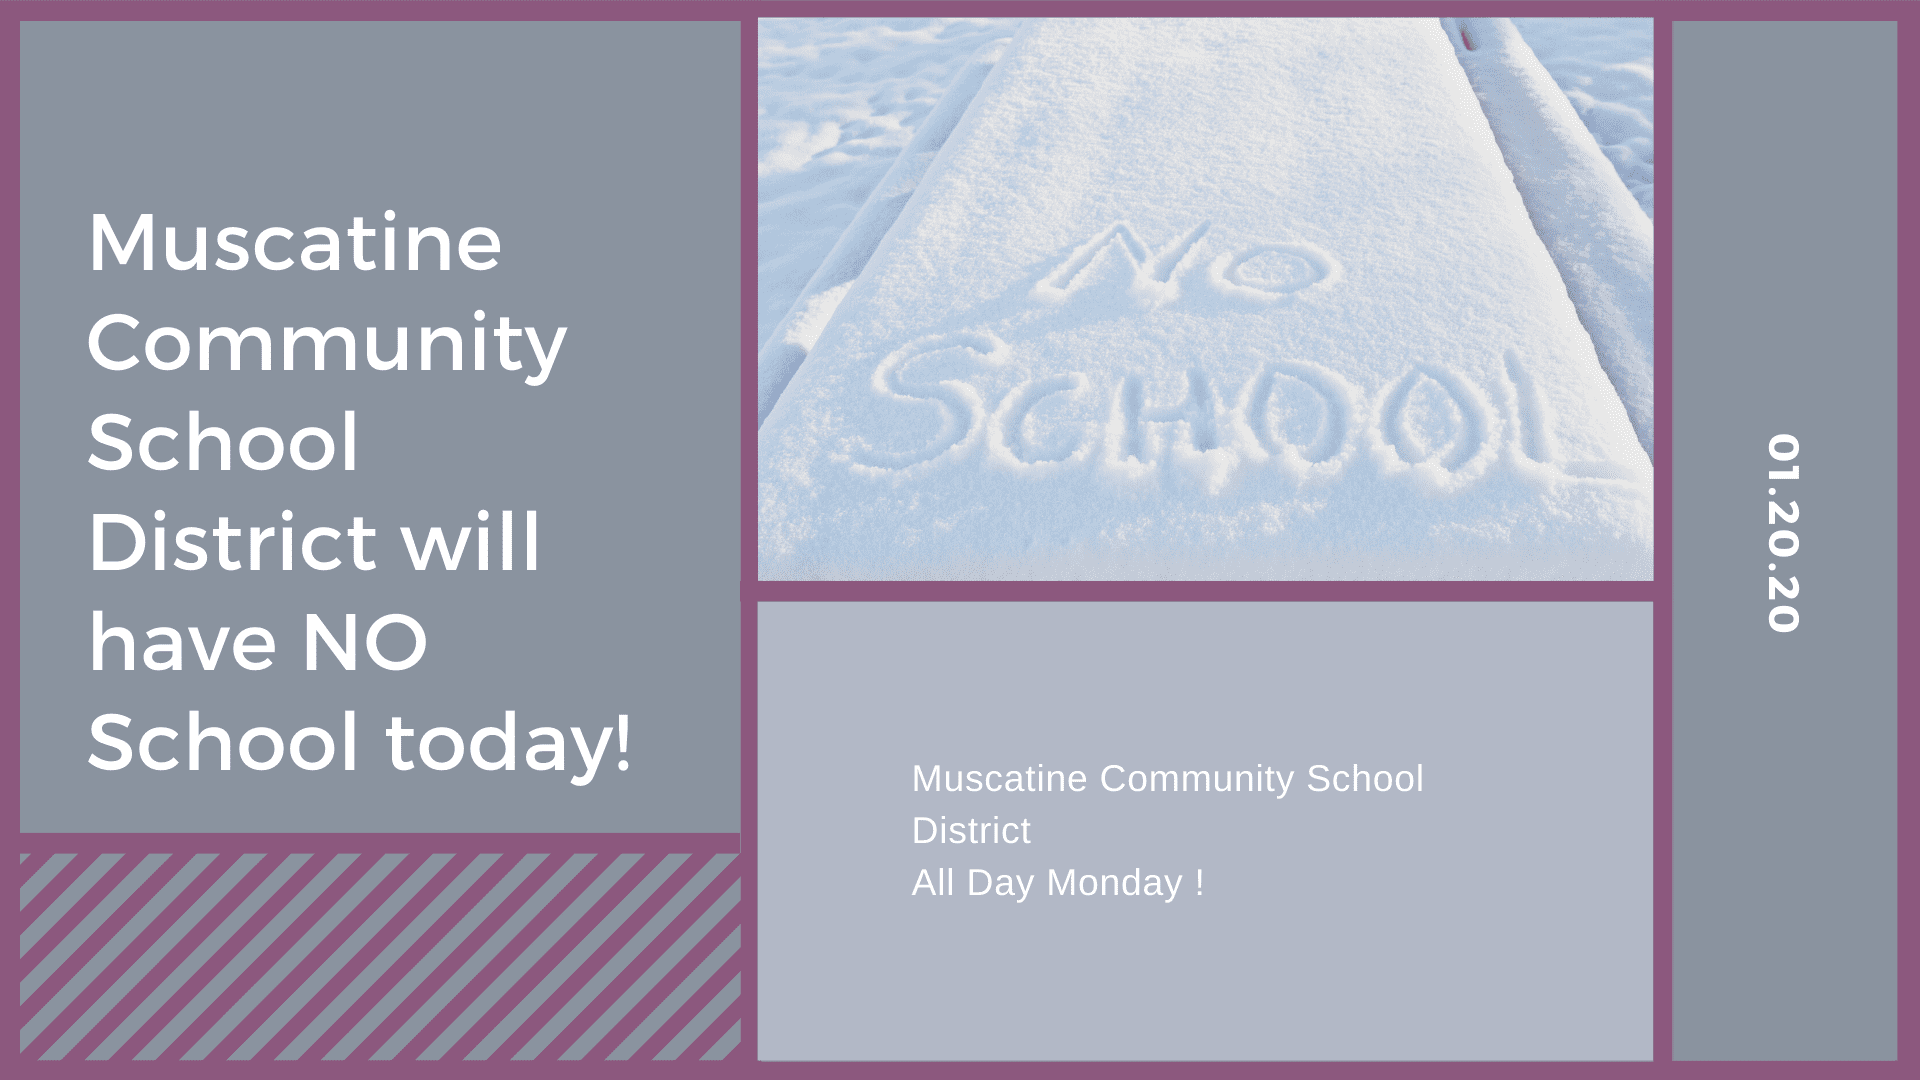 Muscatine Community School District will have NO School today!